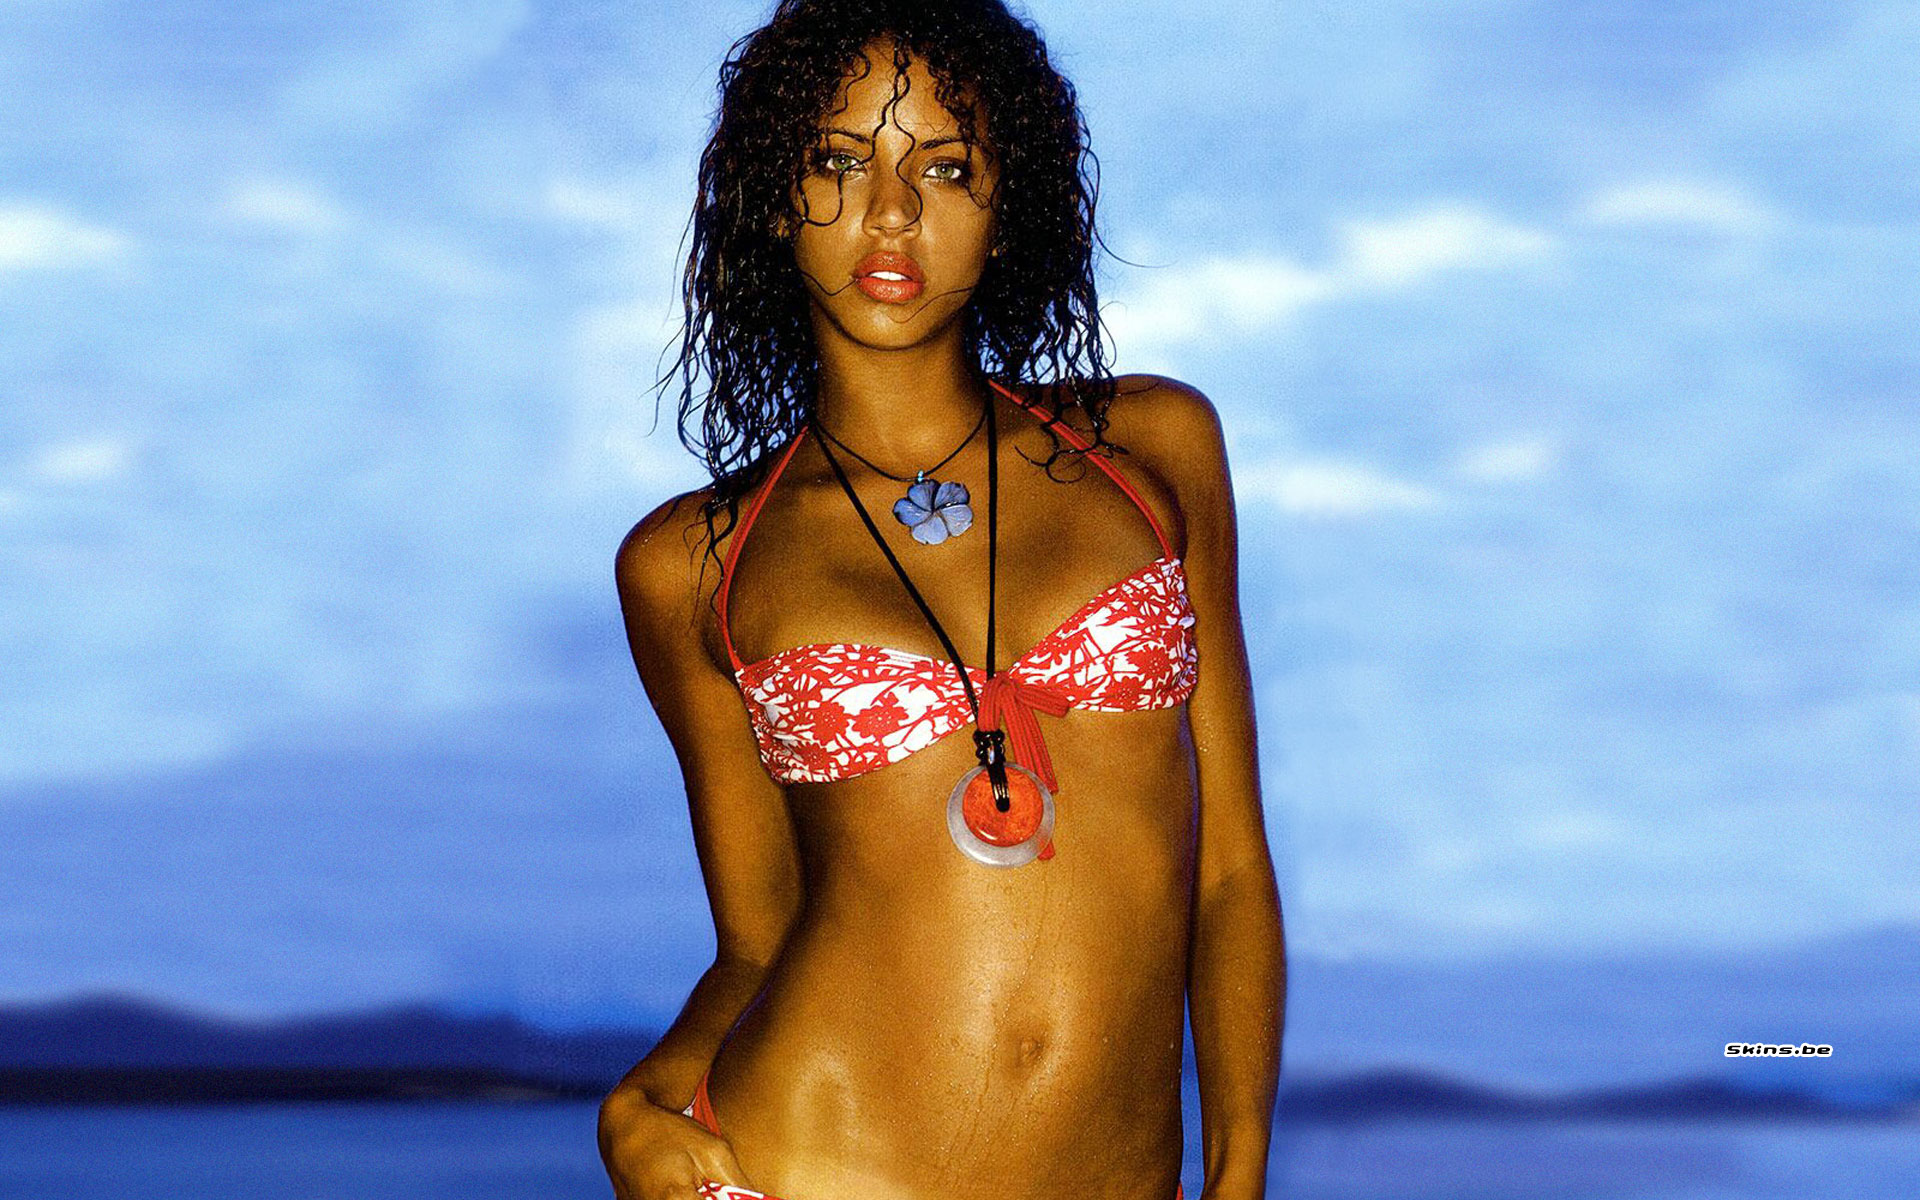 Noemie Lenoir wallpaper (#22656)